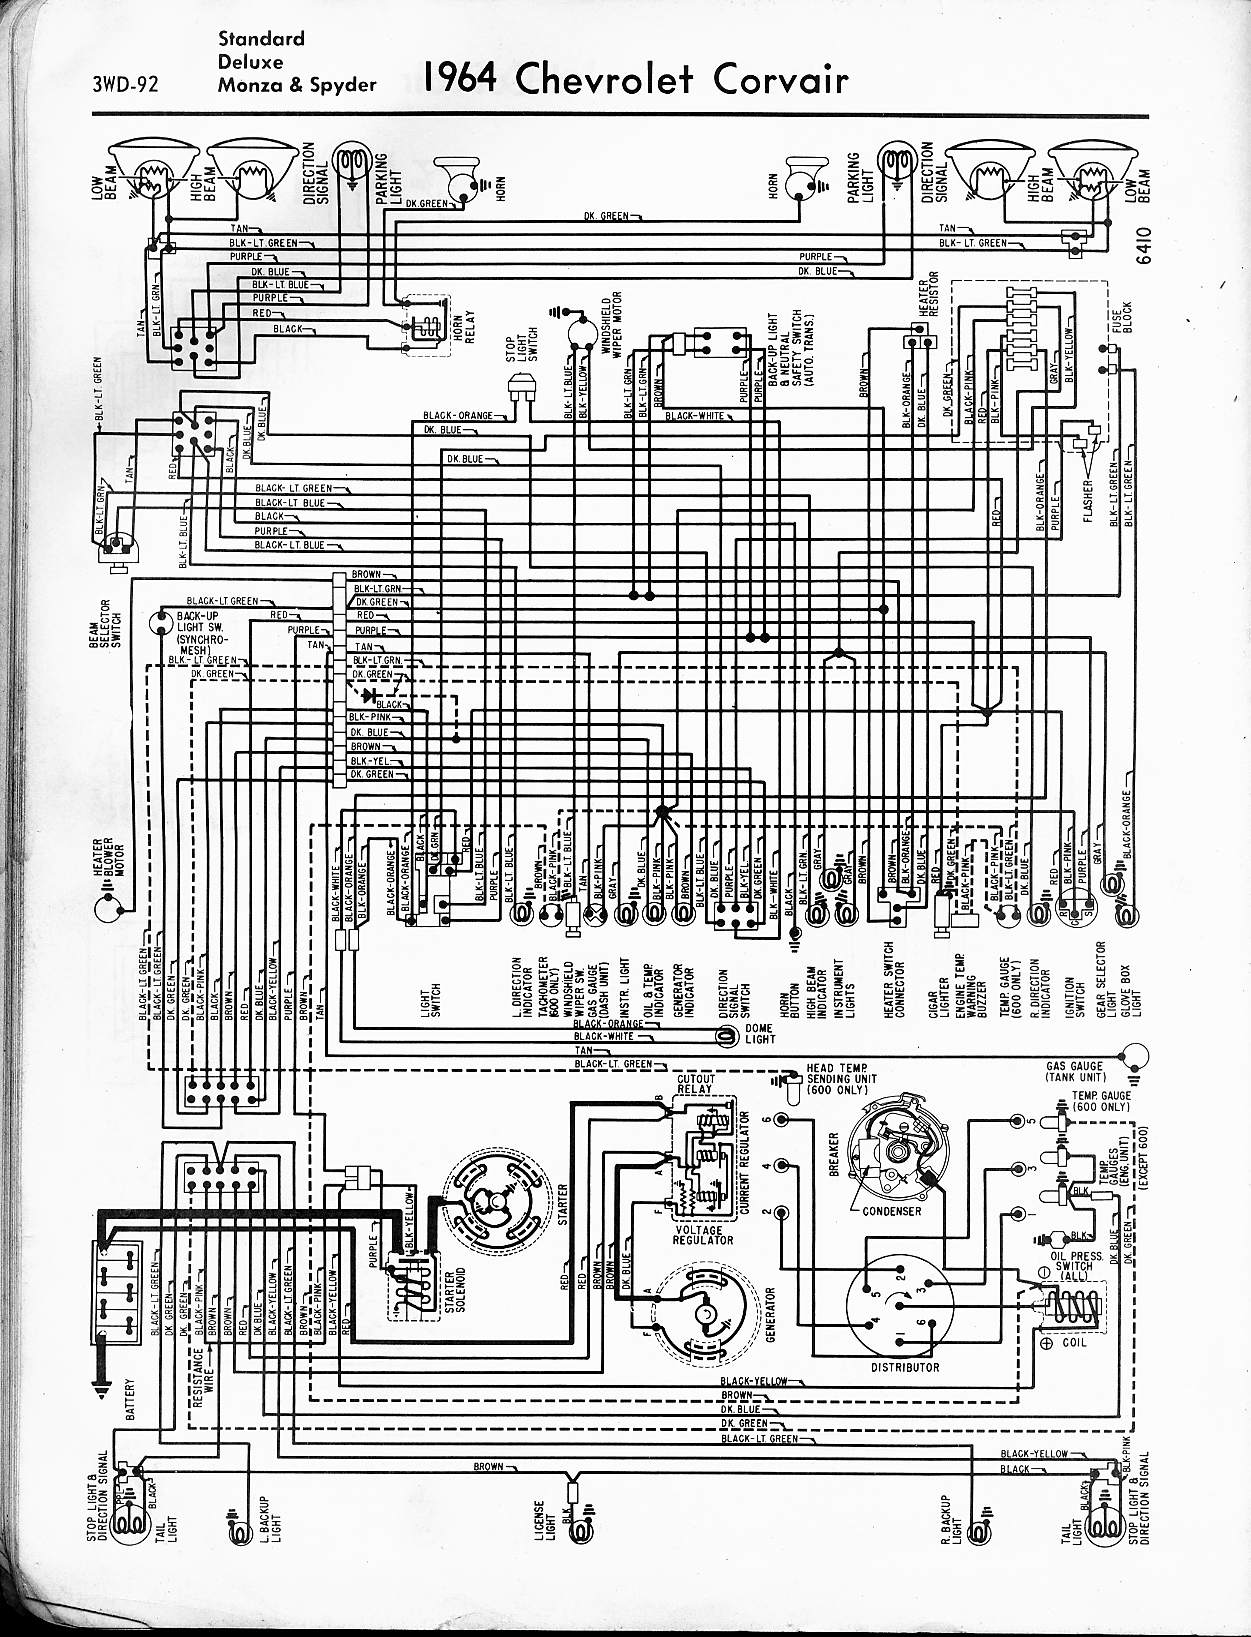 Ignition Coil Wiring Diagram 65 Chevelle Opinions About 1968 Camaro 57 Chevy Diagrams Rh Oldcarmanualproject Com 64